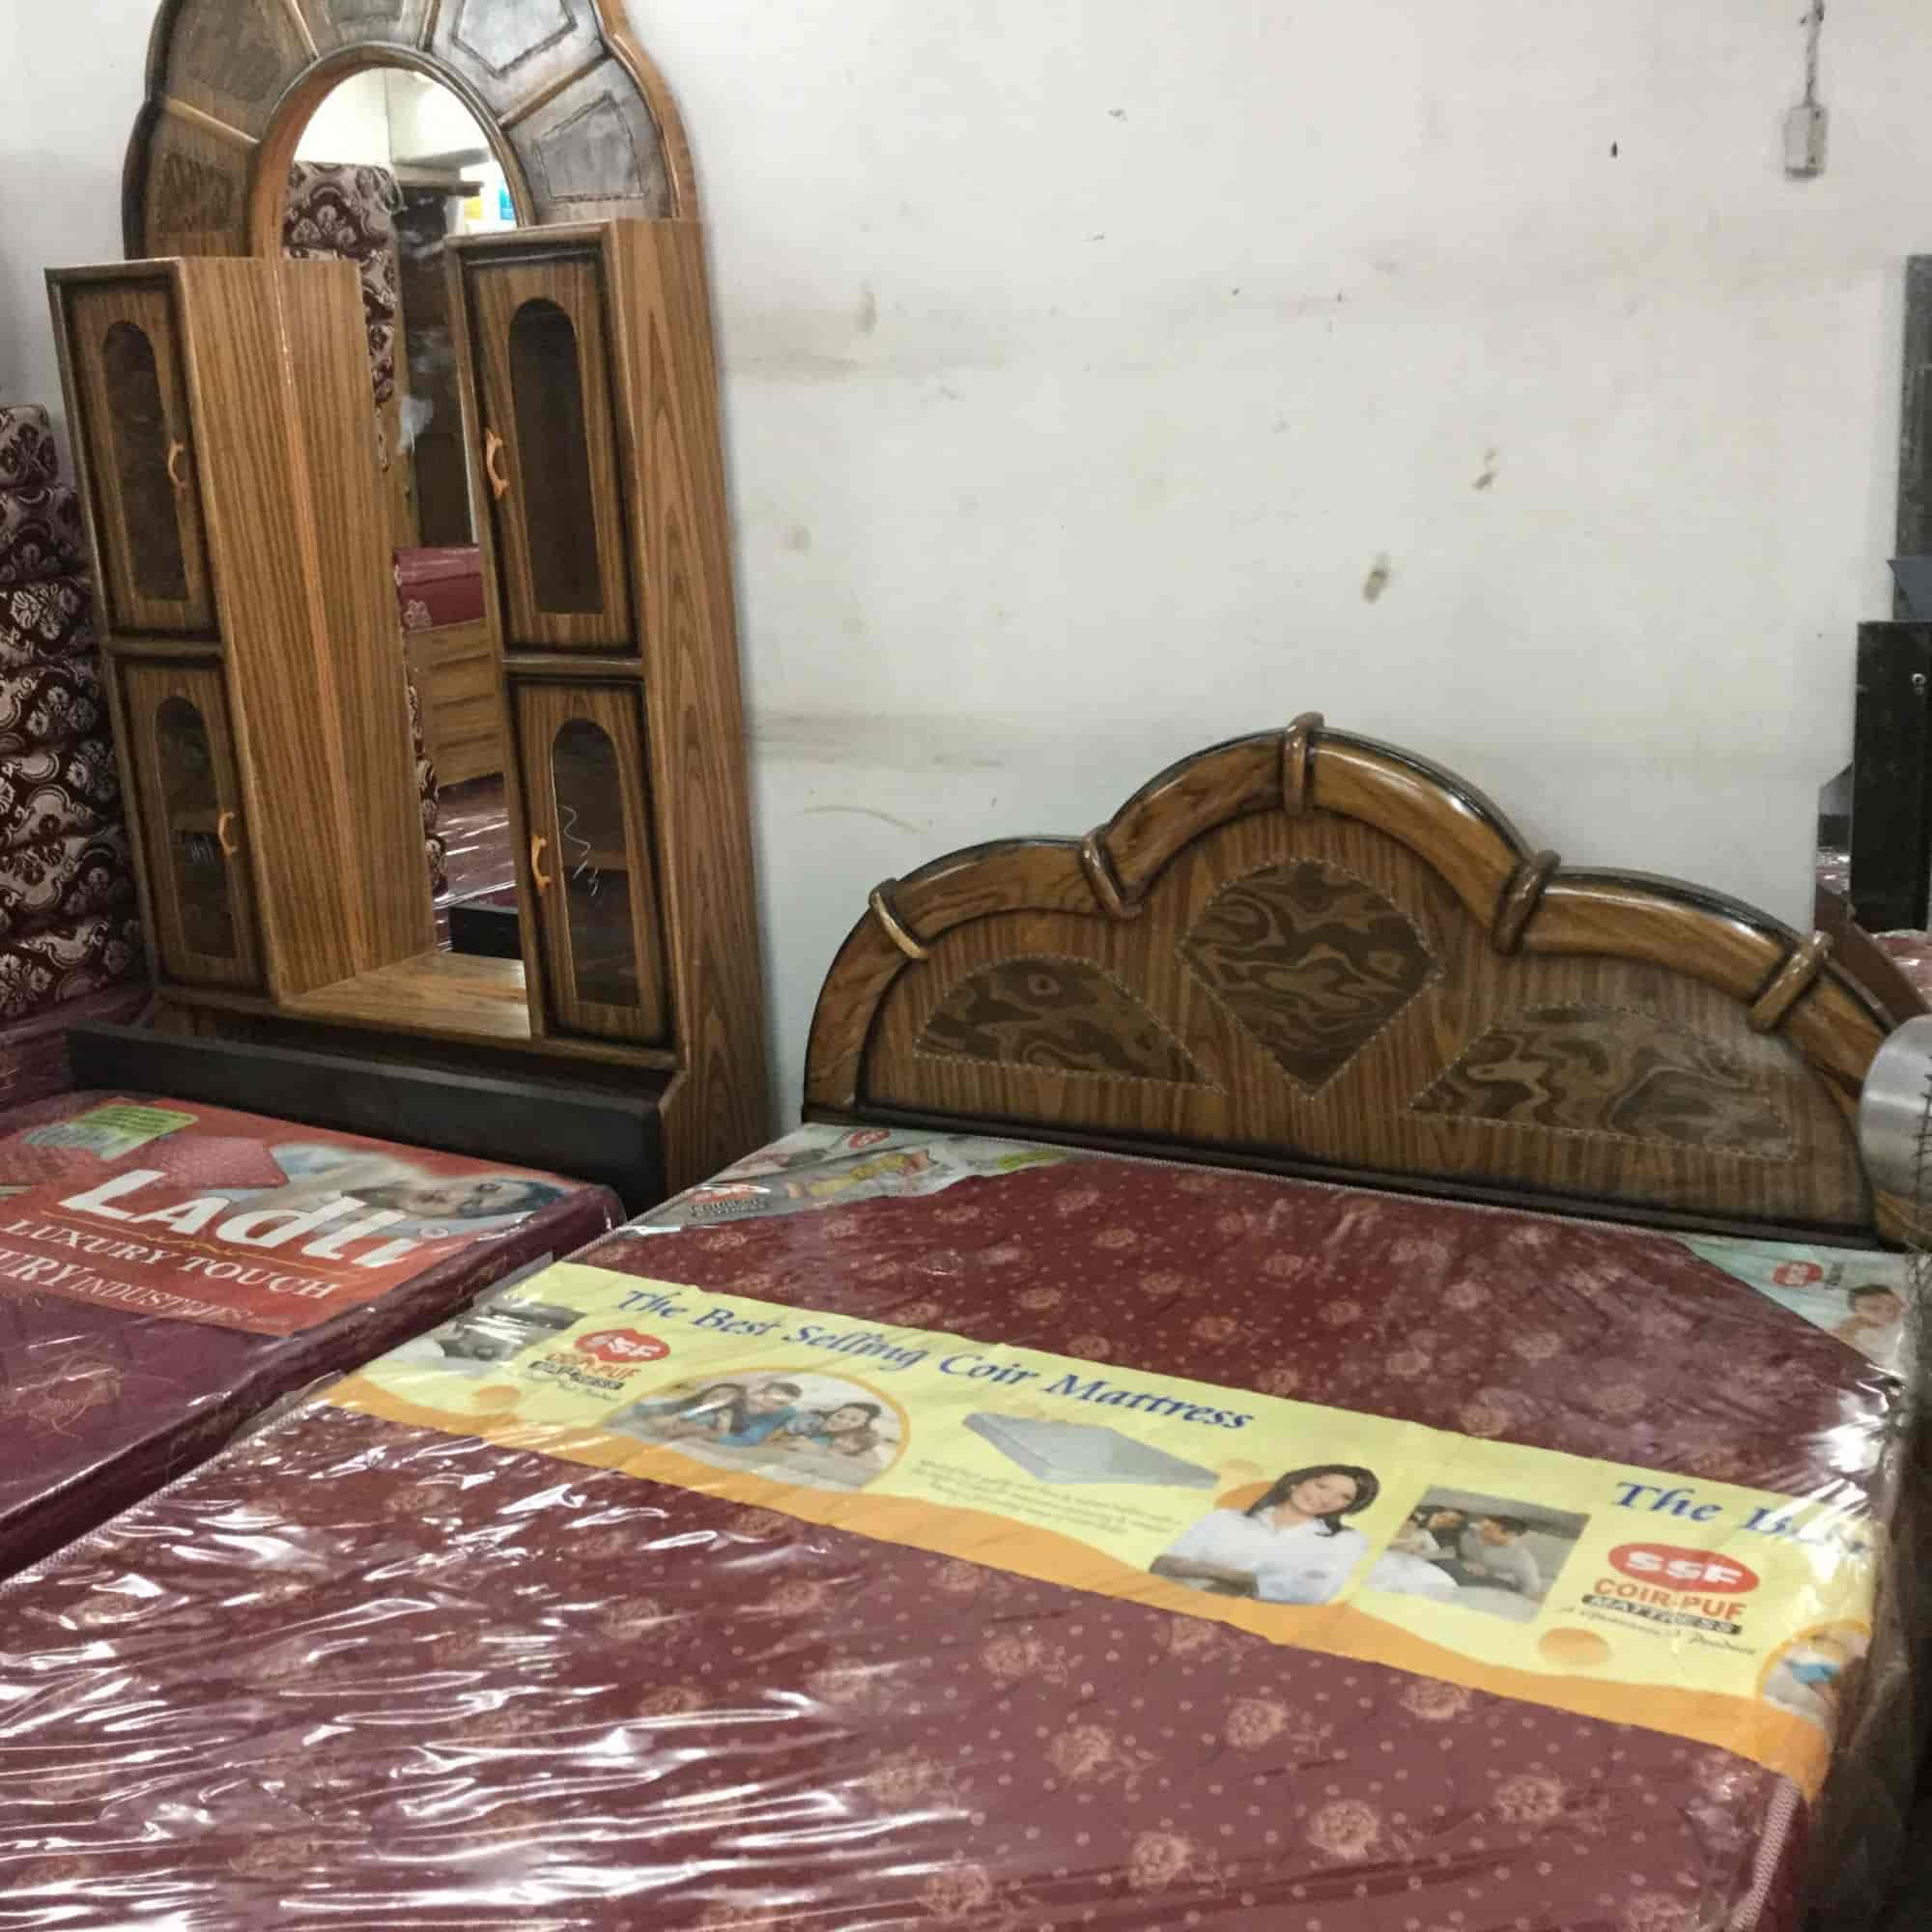 New furniture world photos golmuri jamshedpur furniture dealers